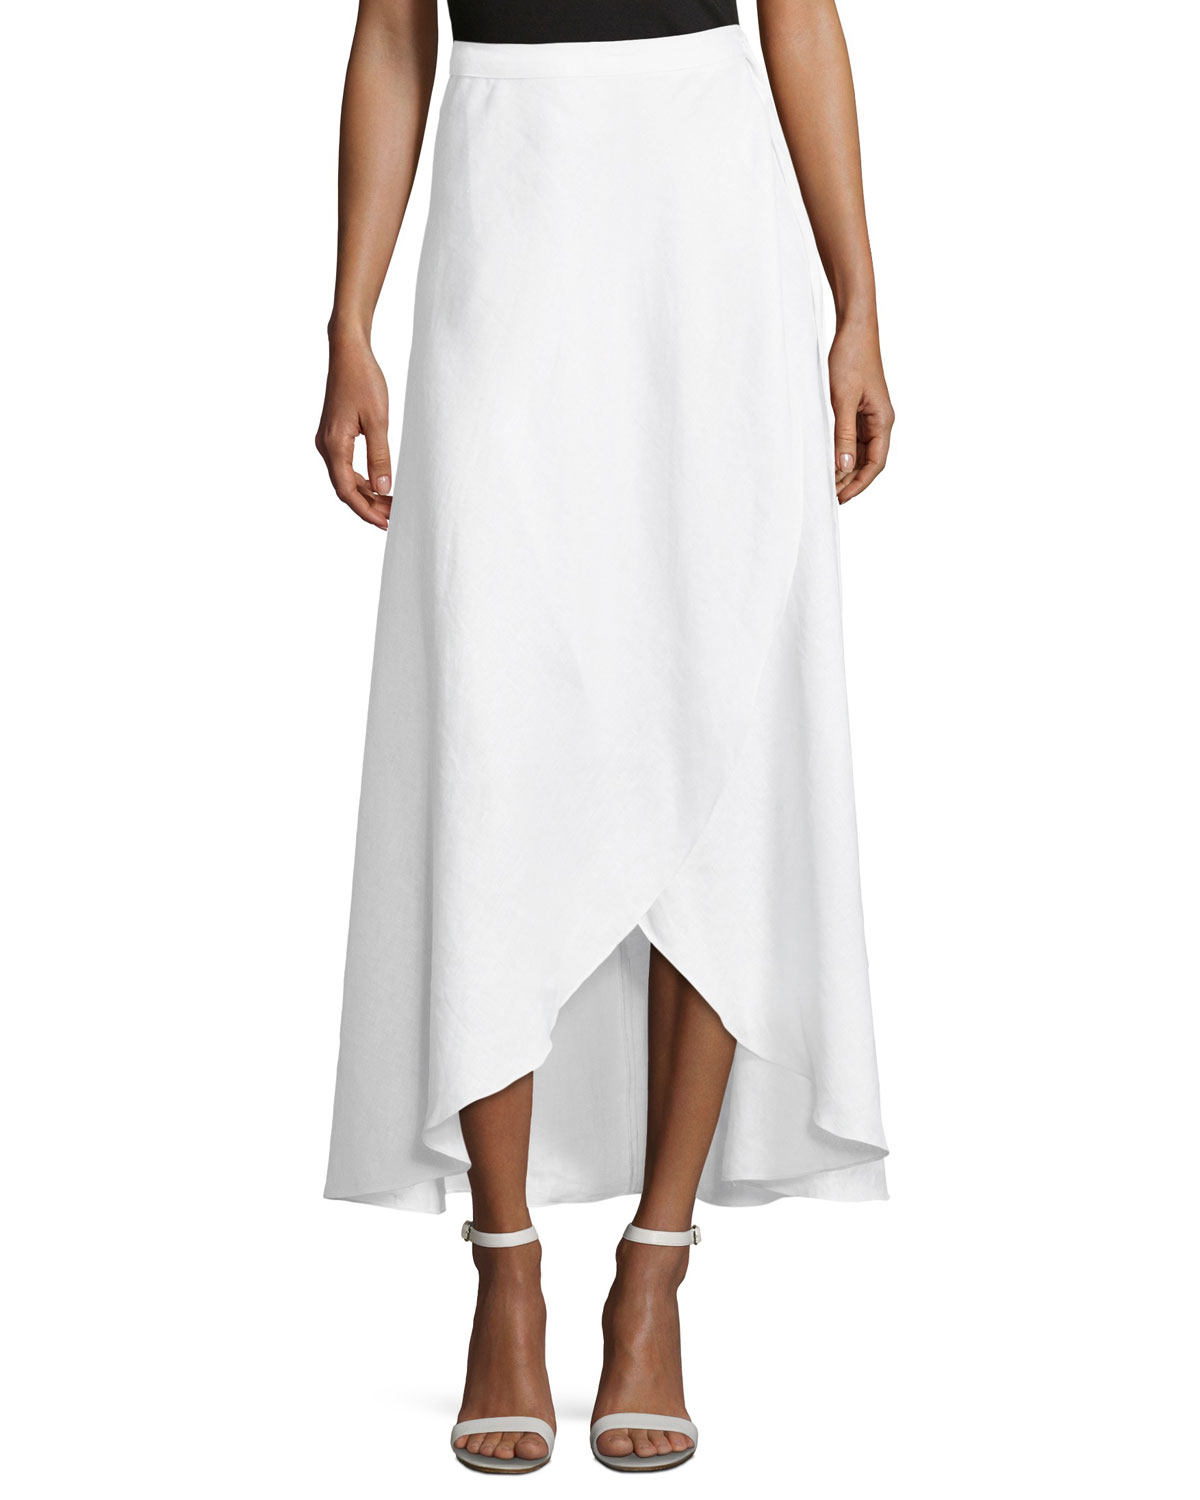 Ballerina Cotton Wrap Long Coverup Skirt